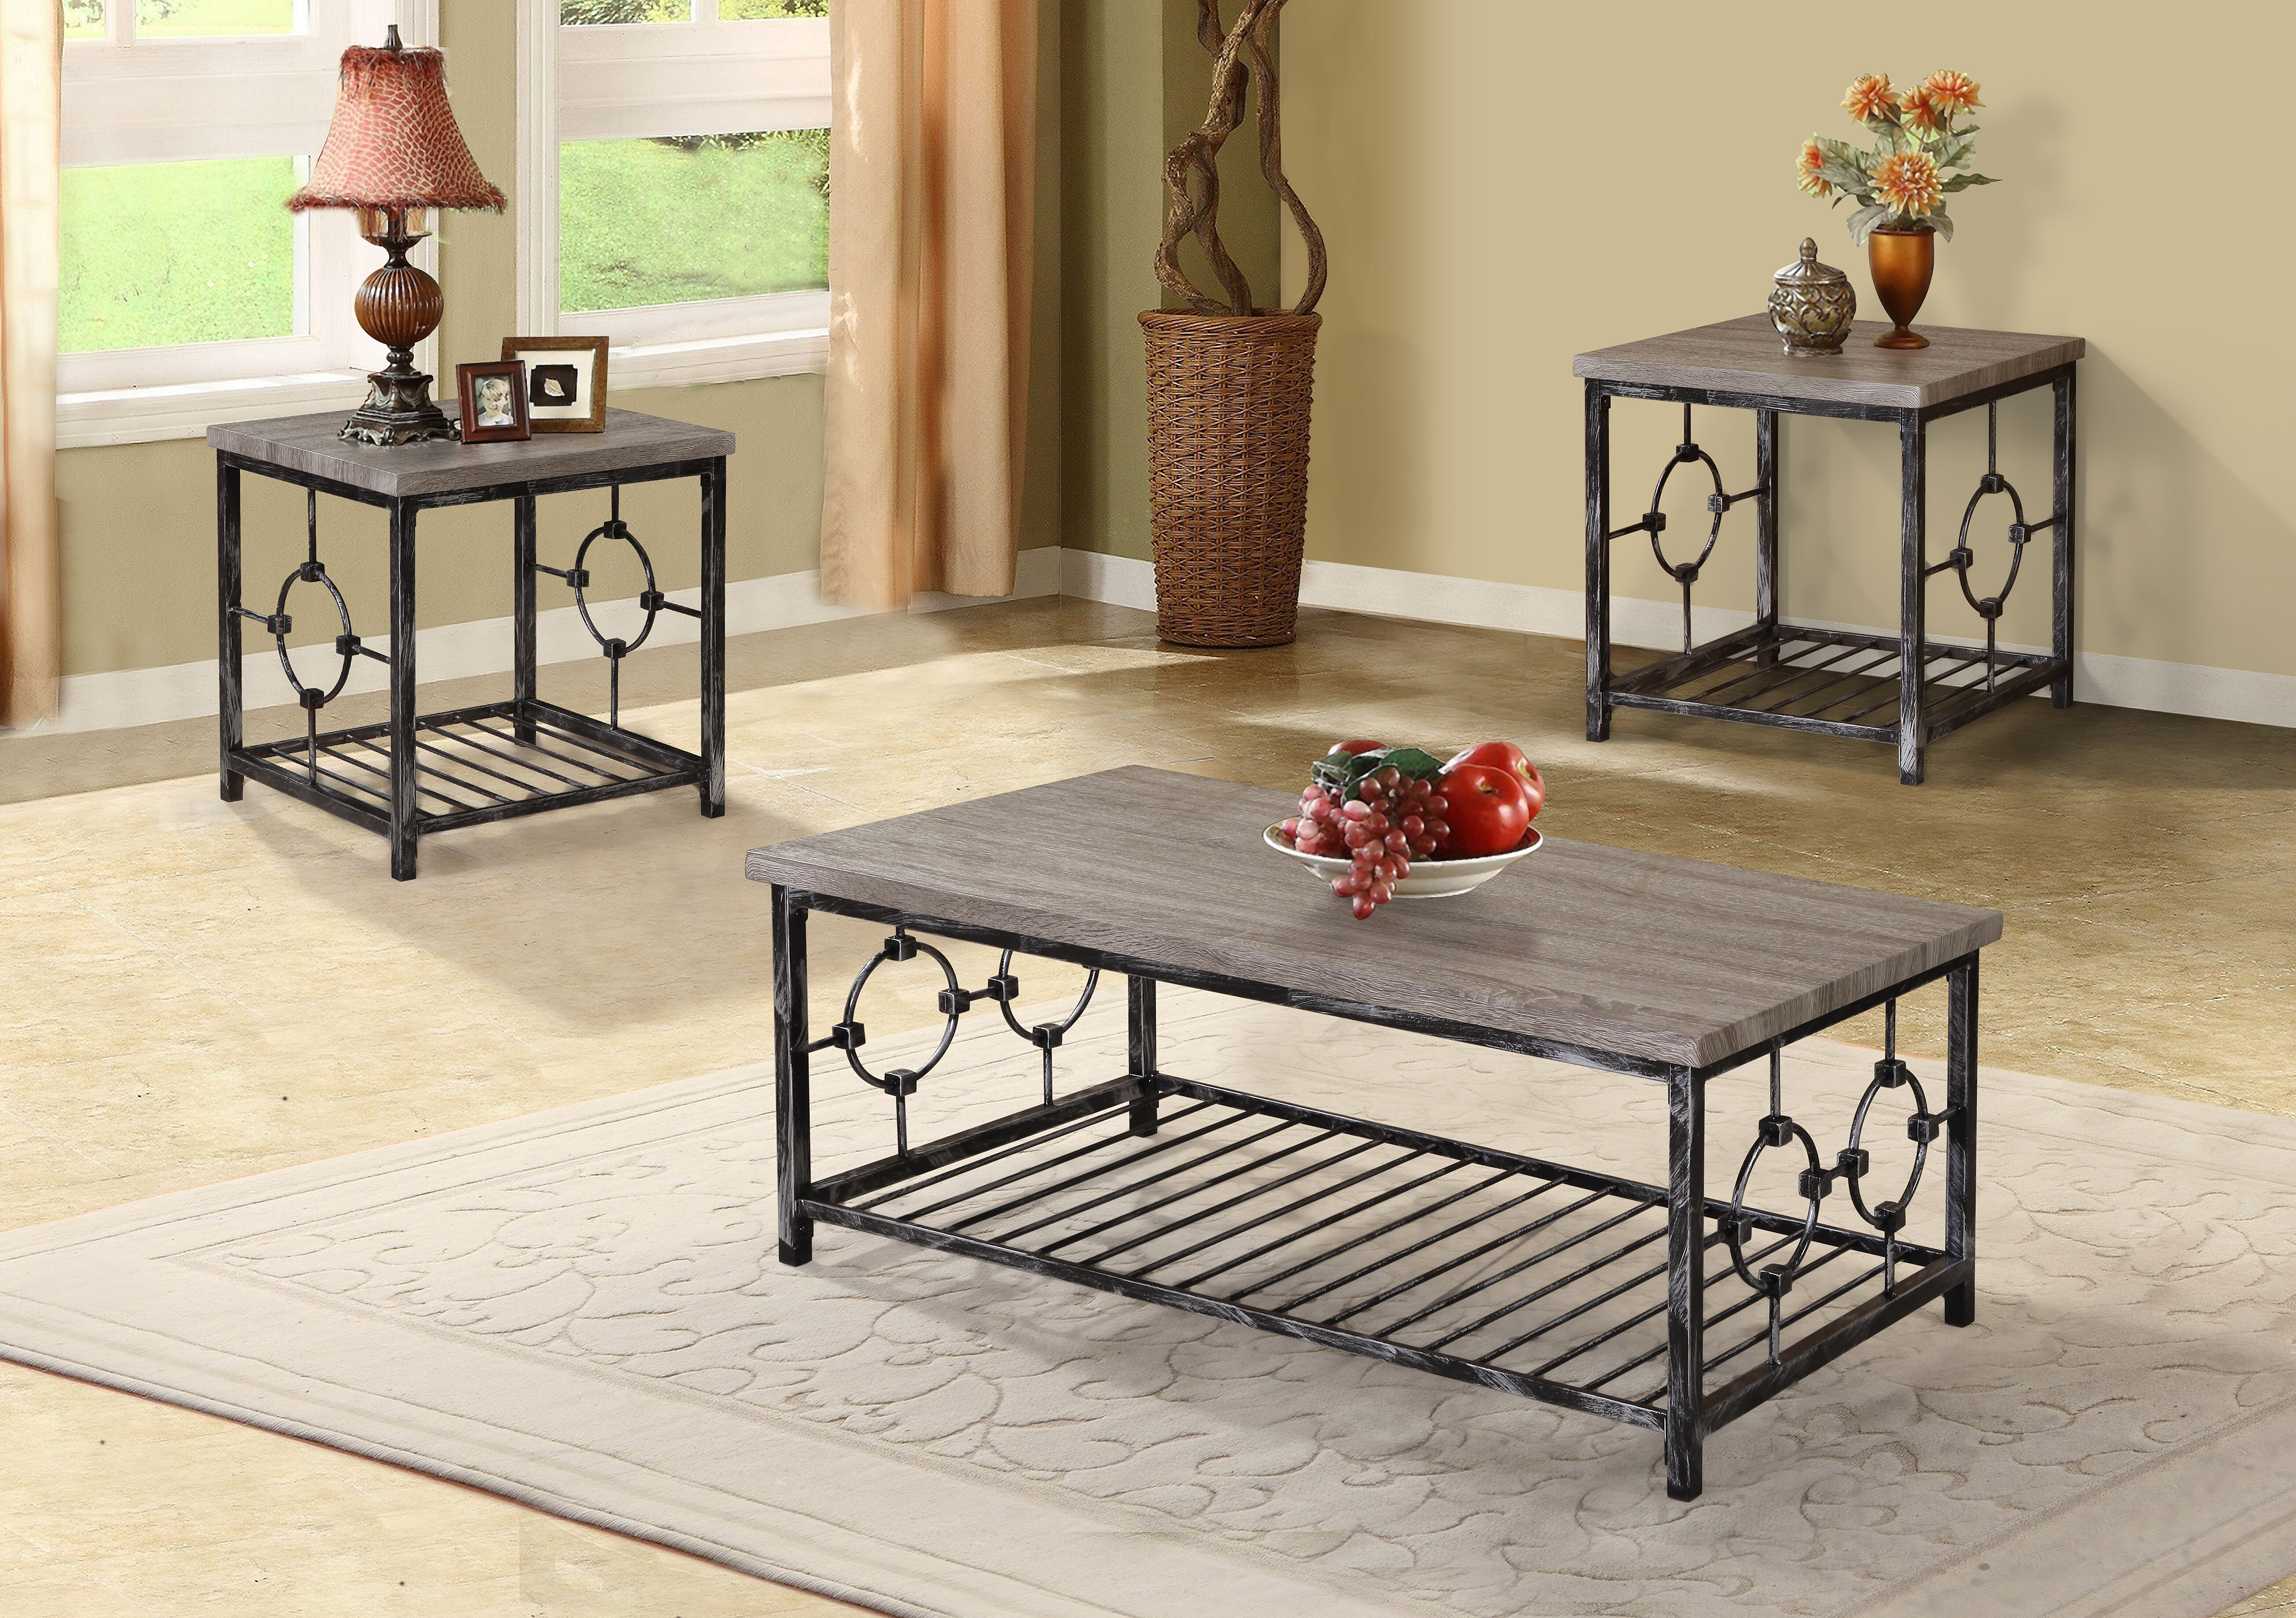 Lage 3 Piece Coffee Table Set